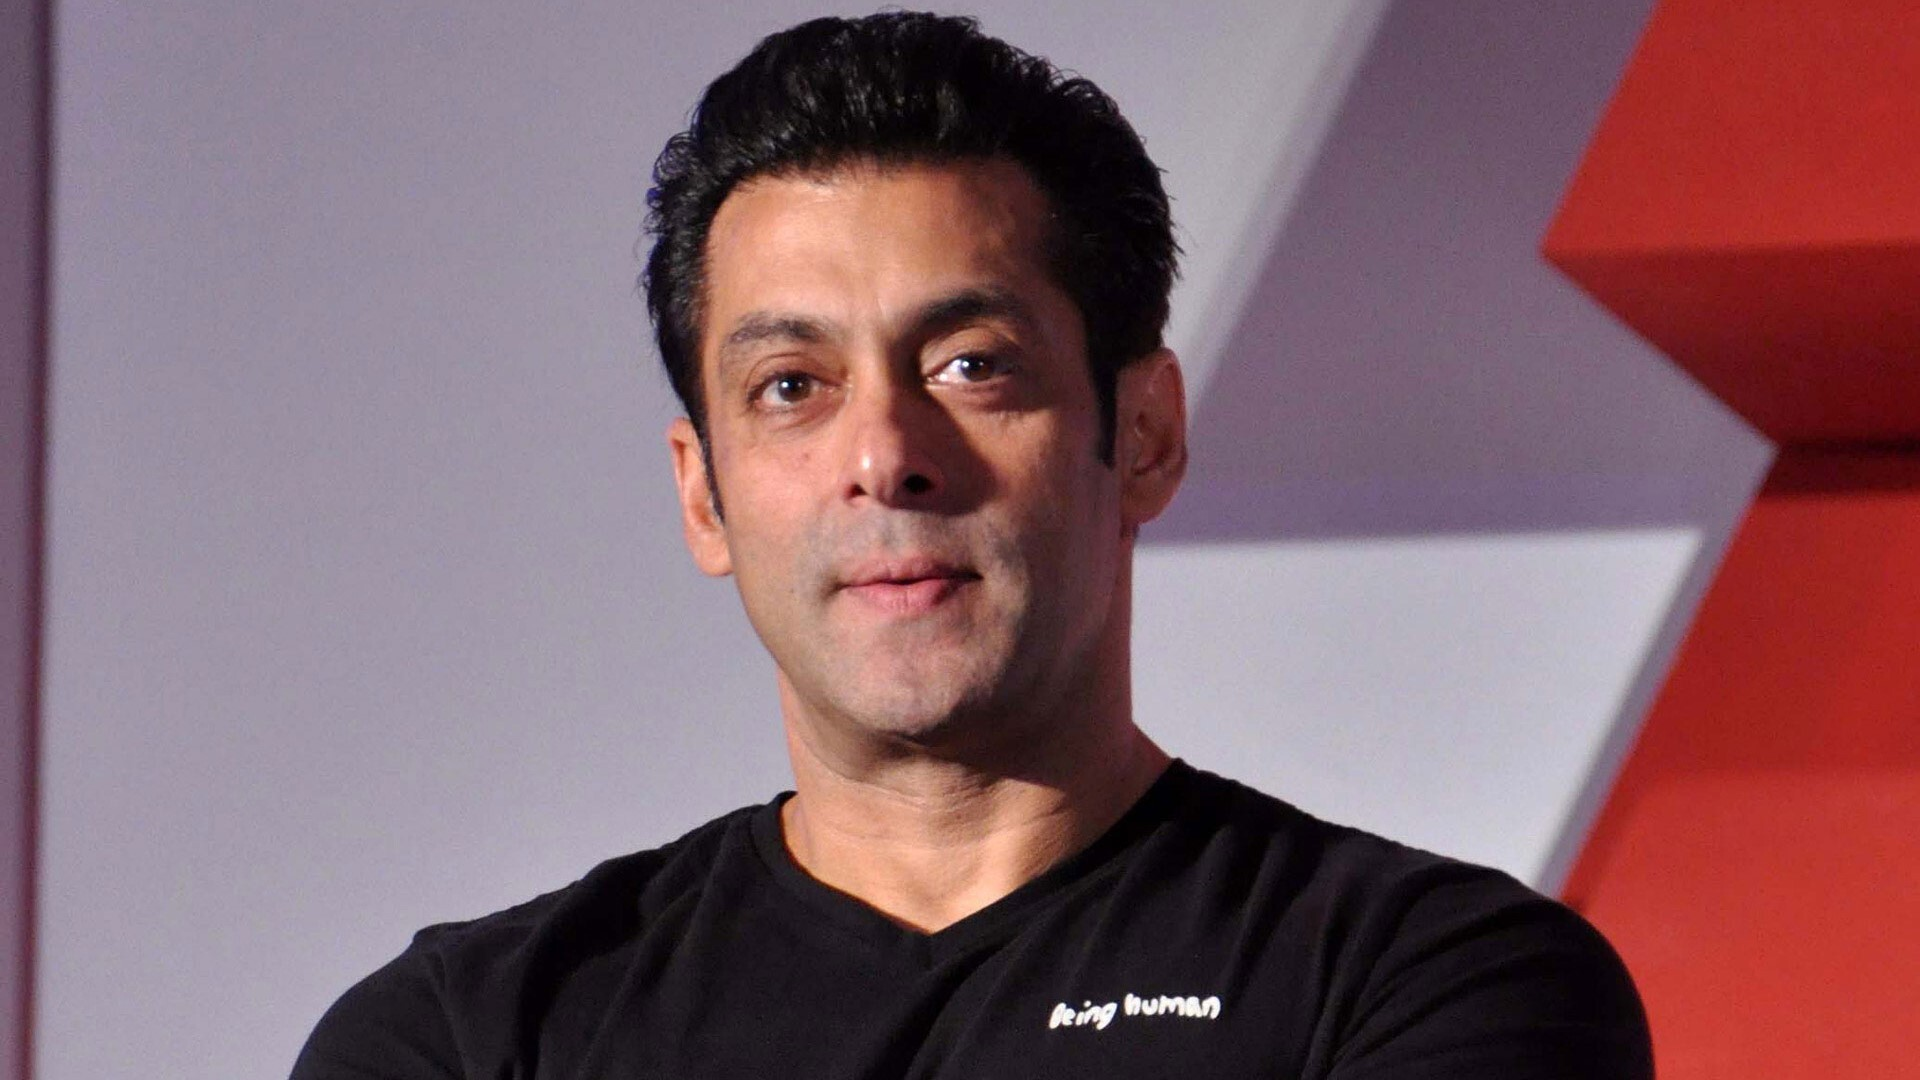 salman khan in being human tshirt popular bollywood actor wallpaper